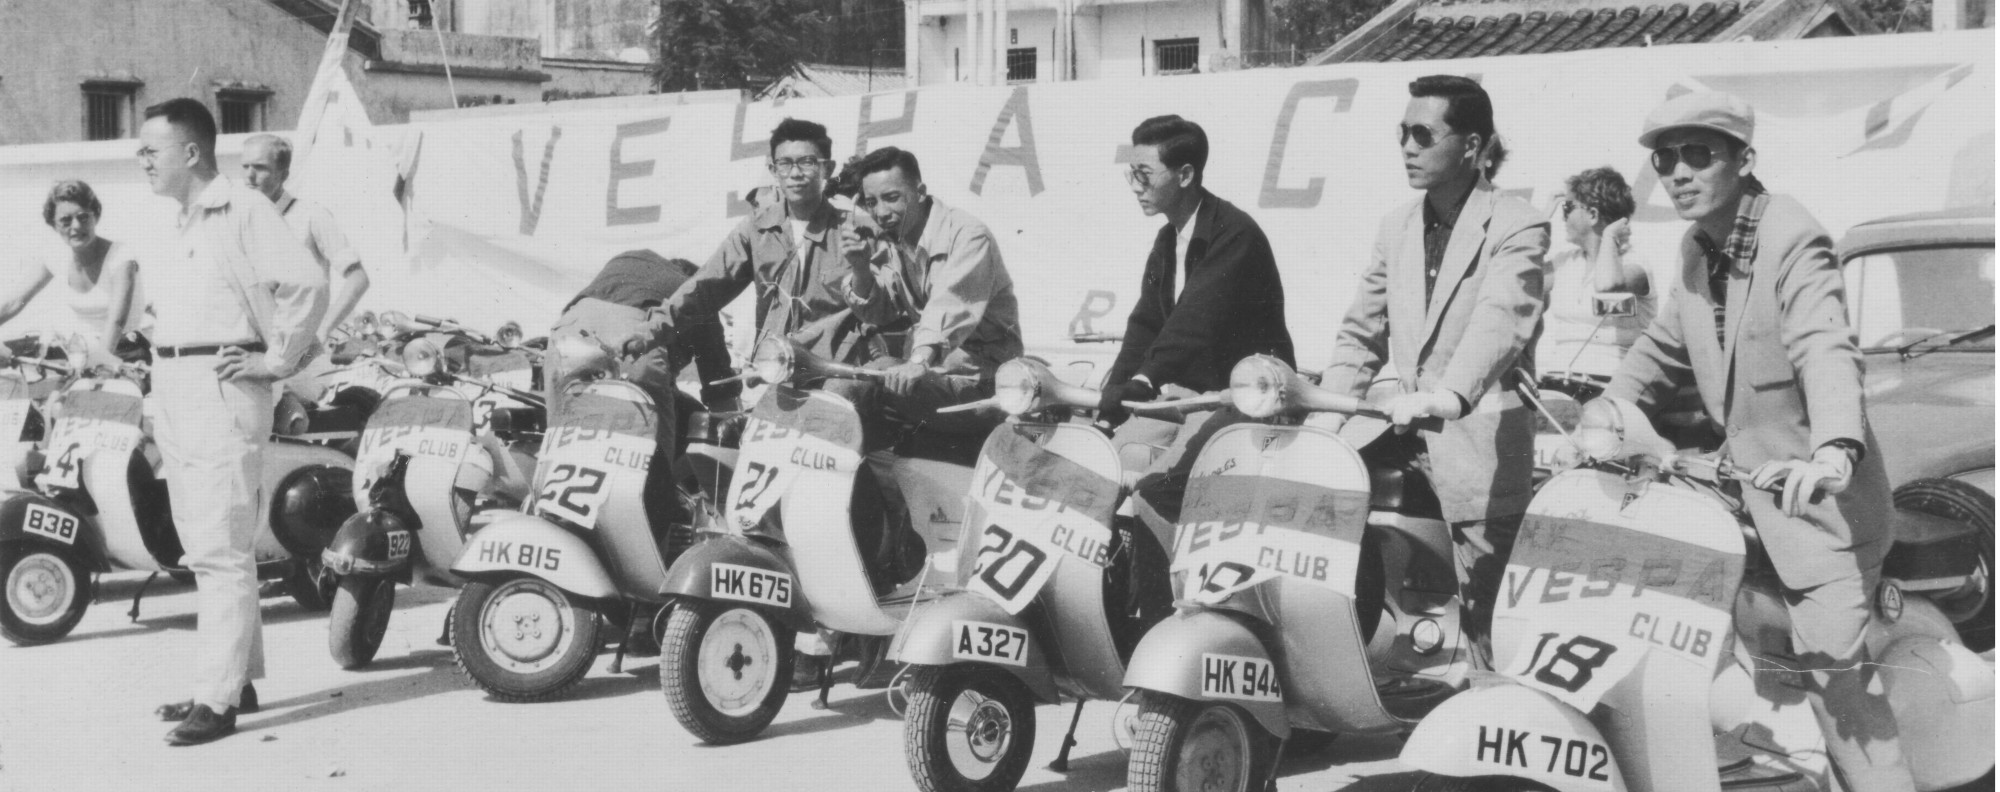 The Vespa Club in the New Territories, circa 1960.